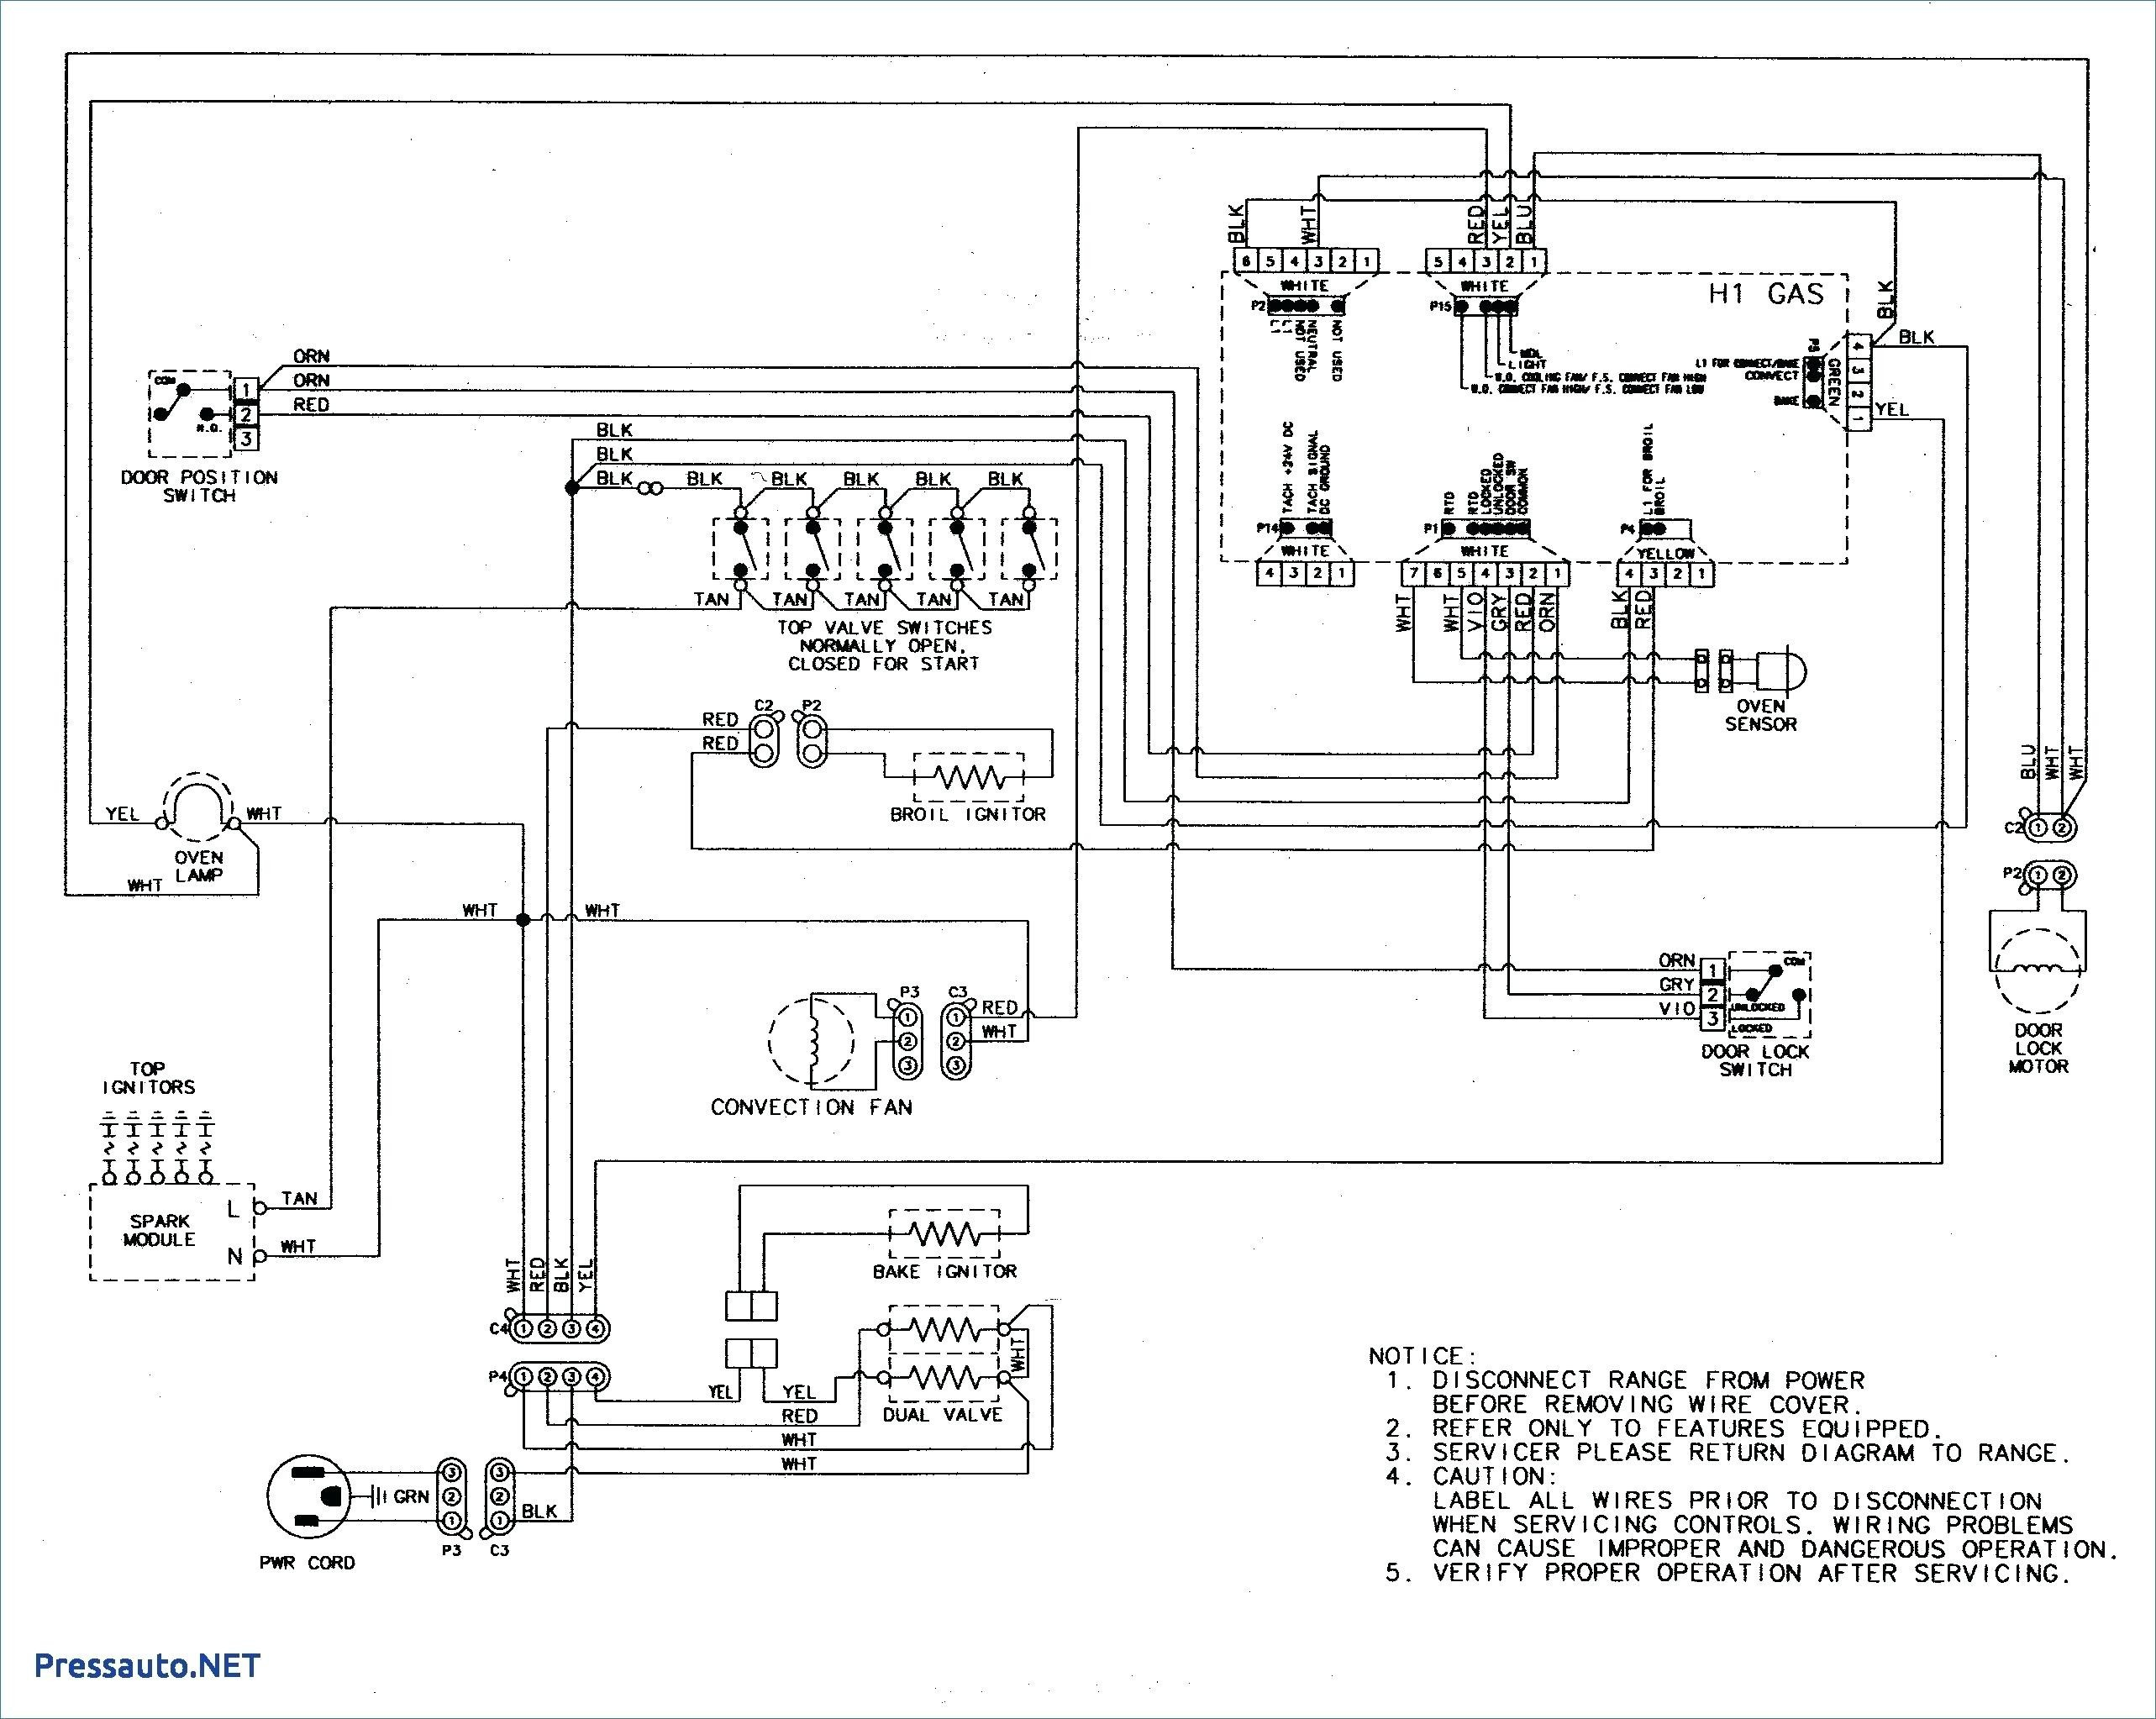 DIAGRAM] 2003 Saab 9 3 Arc Wiring Diagram FULL Version HD Quality Wiring  Diagram - LOGICDIAGRAM.RADIOSTUDIOUNO.ITlogicdiagram.radiostudiouno.it